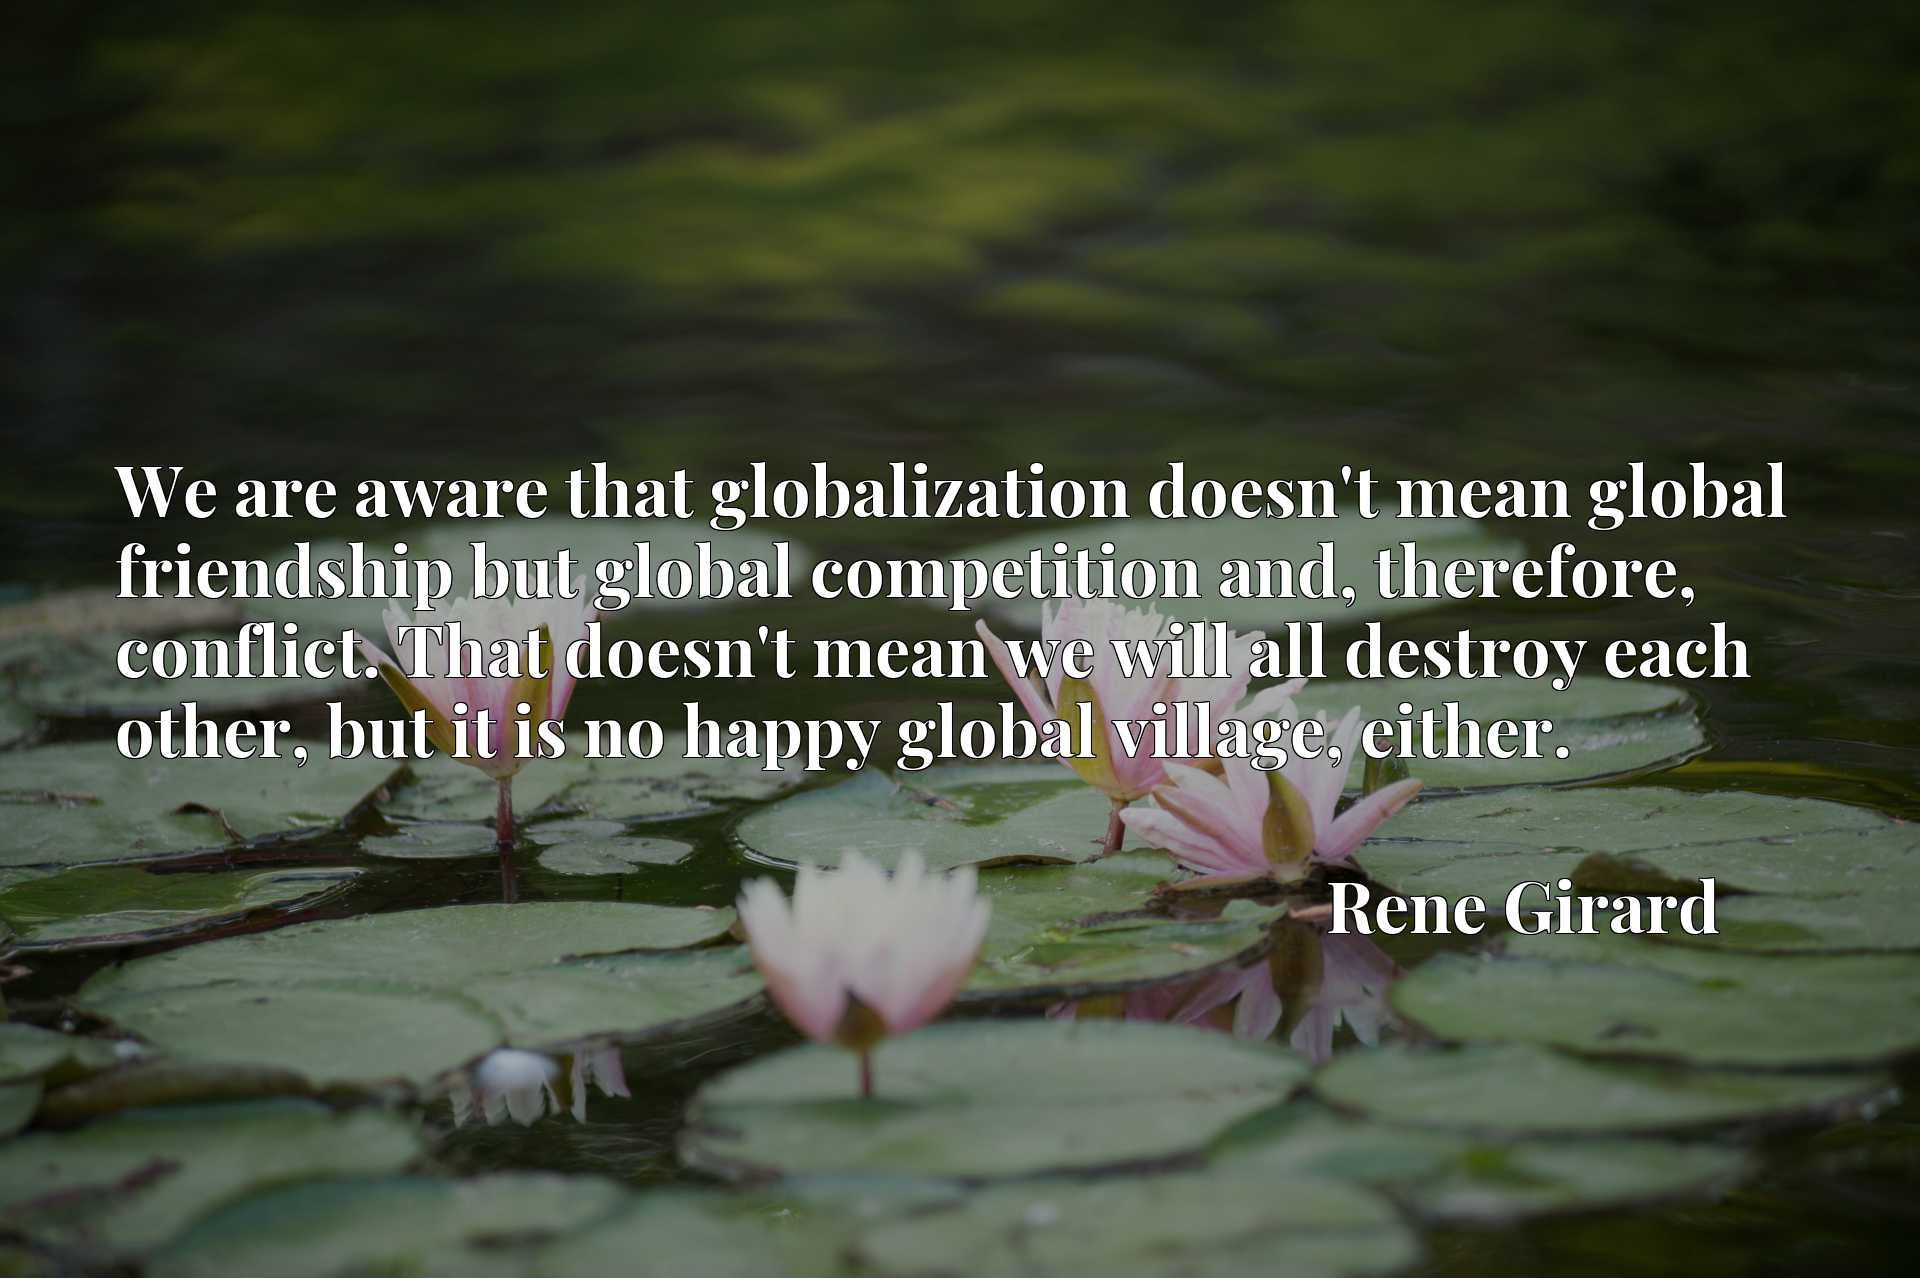 We are aware that globalization doesn't mean global friendship but global competition and, therefore, conflict. That doesn't mean we will all destroy each other, but it is no happy global village, either.